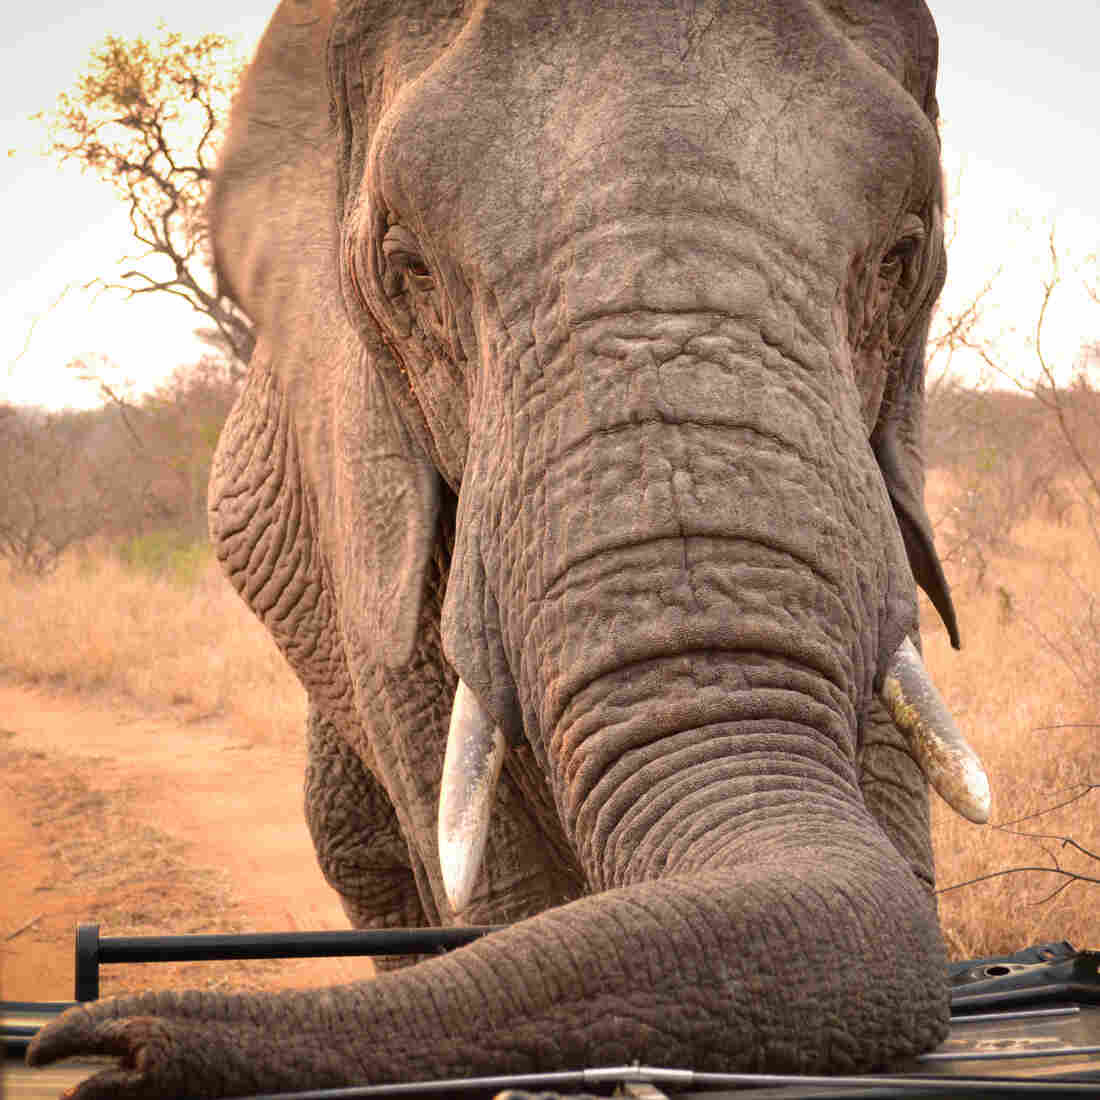 When Detecting Land Mines, The Nose Knows — Or, In This Case, The Trunk